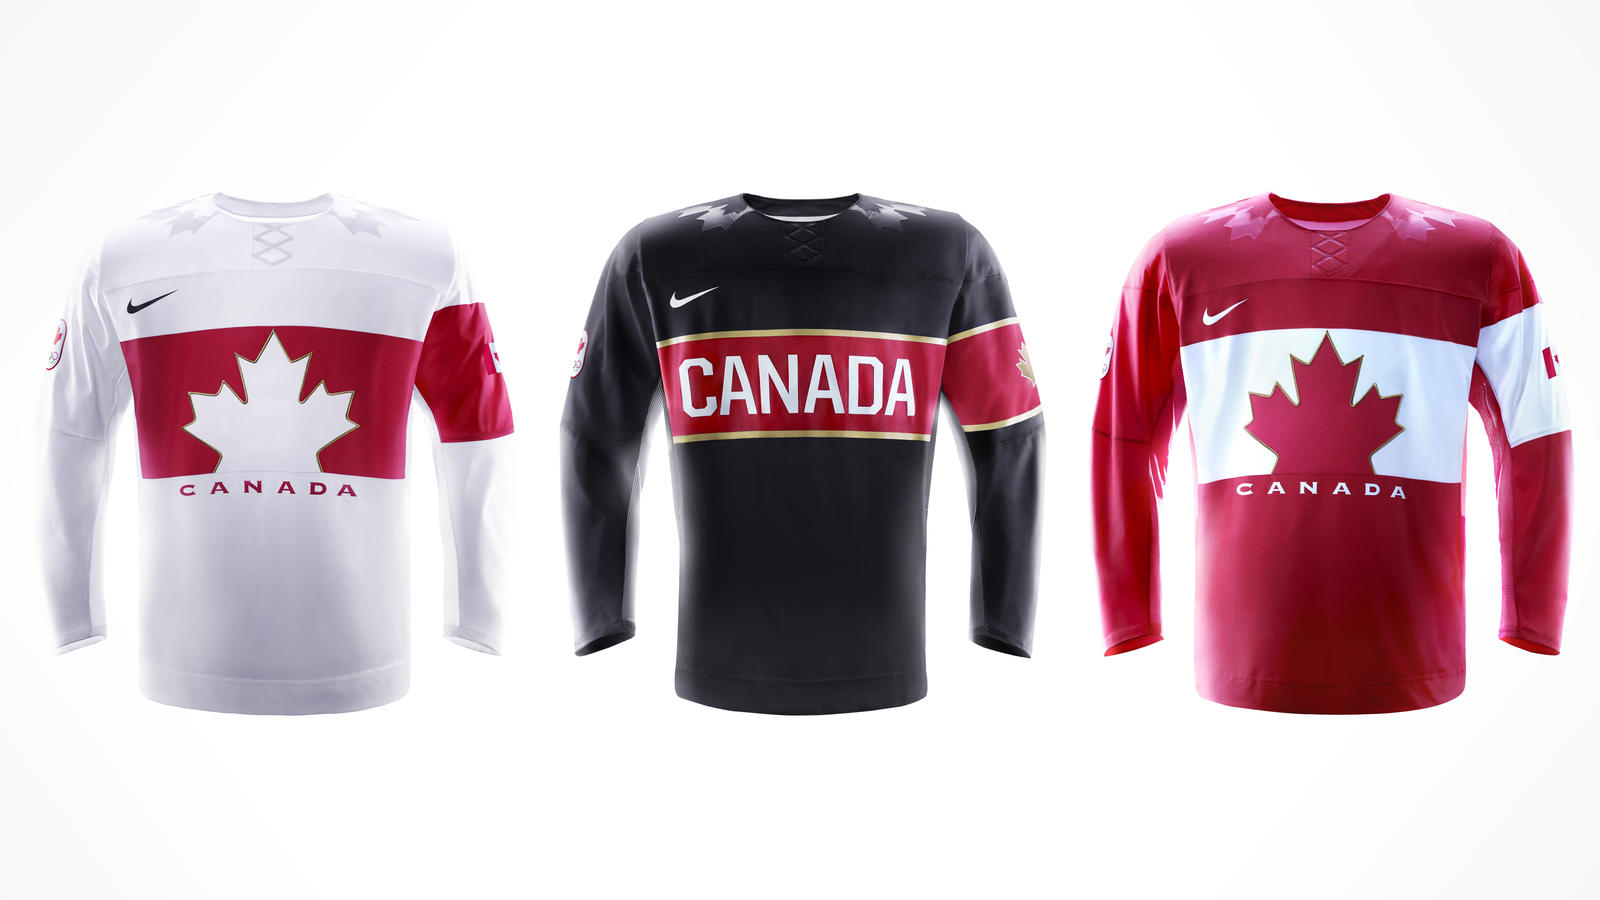 Canada-2014-Hockey-Jersey-3-up_hd_1600.j